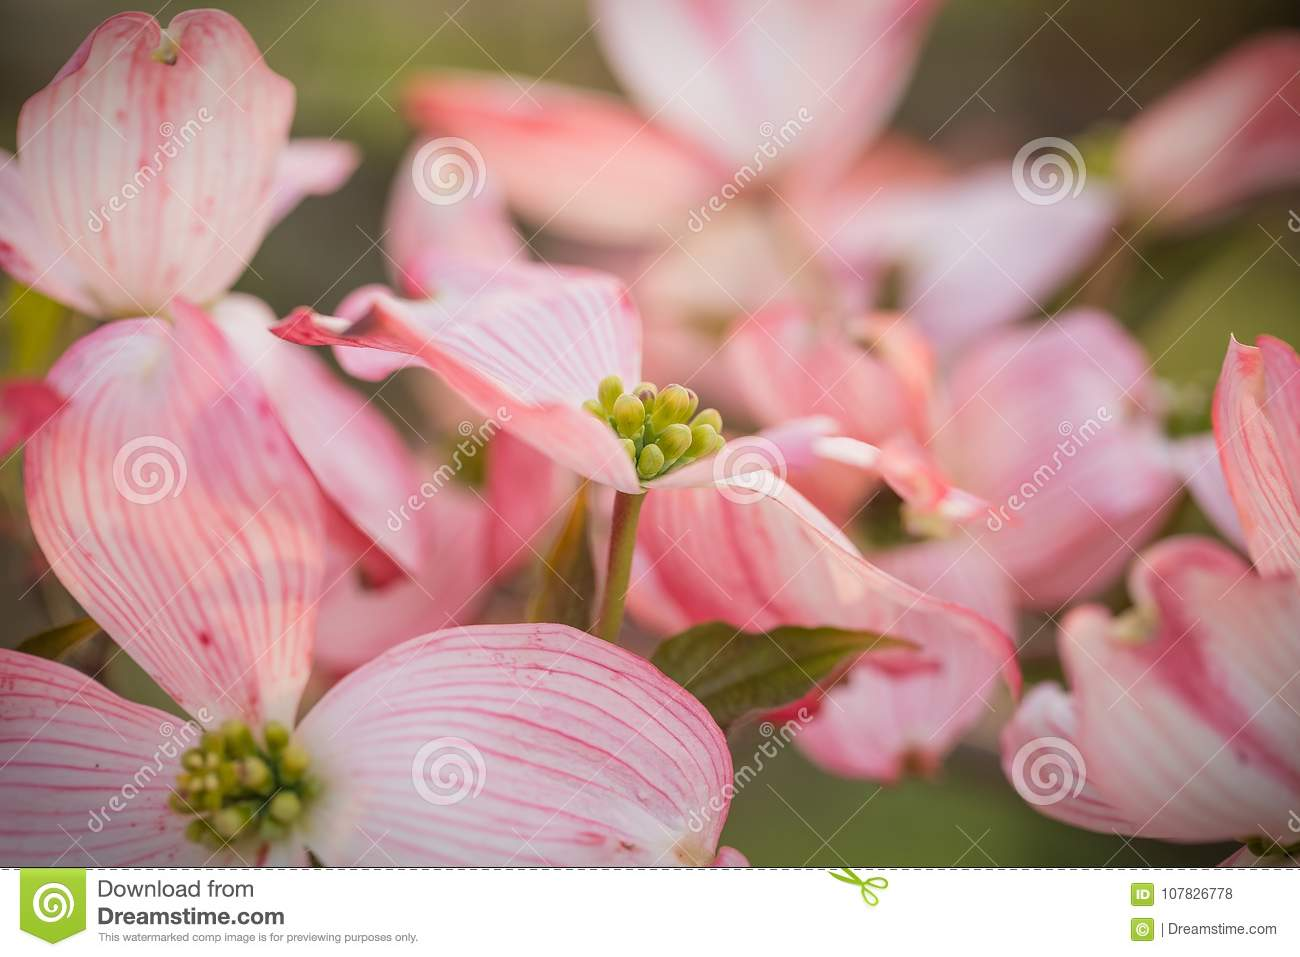 An abundace of flowering pink dogwood blossoms stock photo image download an abundace of flowering pink dogwood blossoms stock photo image of pink spring mightylinksfo